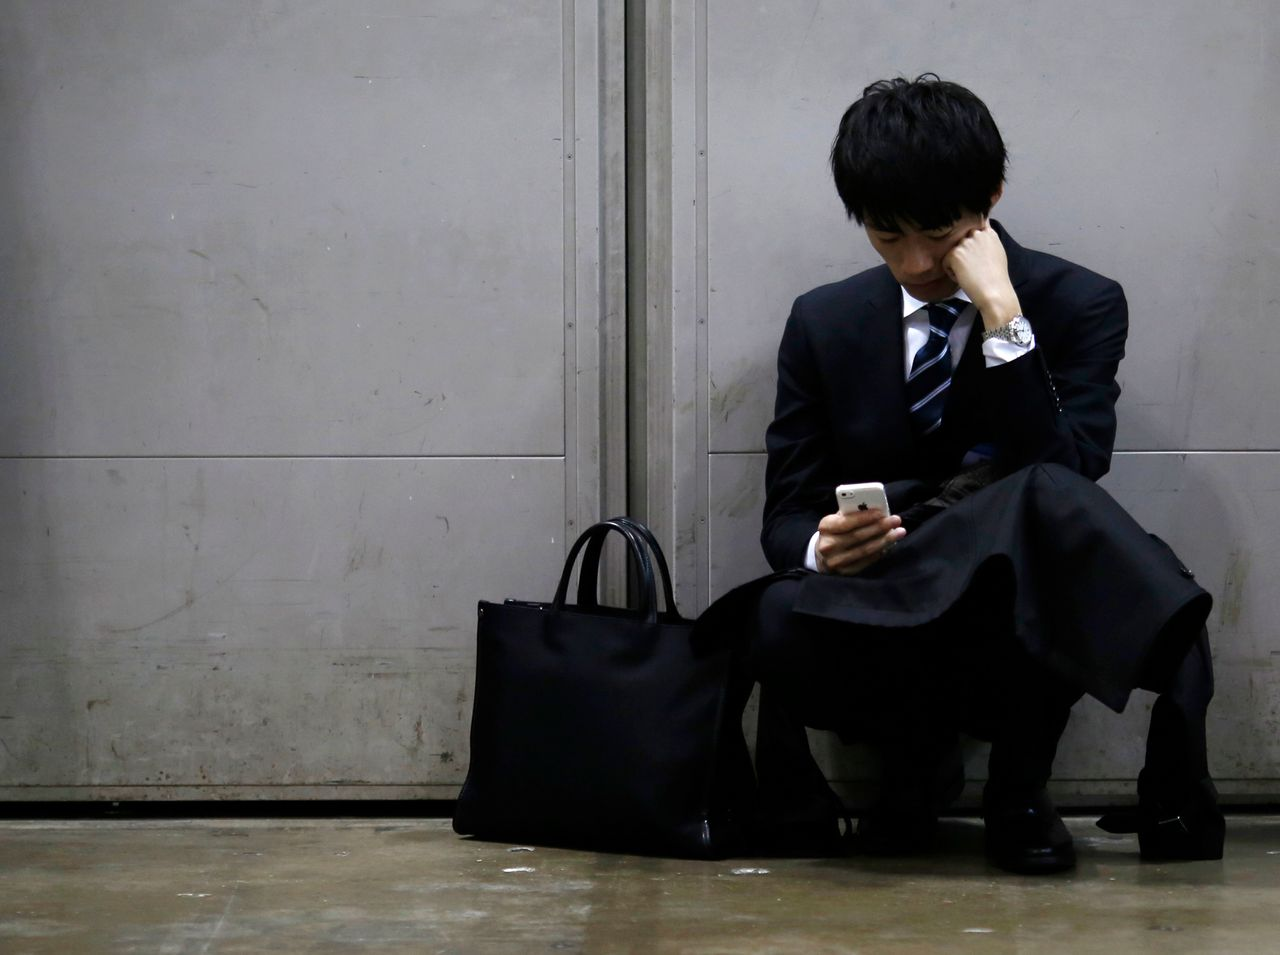 A job seeker looks at his cellphone during a job fair for graduates in Tokyo, 2015. Permanent jobs are harder to come by in Japan. Since the financial crisis in 2008, much of employment growth has been in fixed-term, part-time or temporary work.